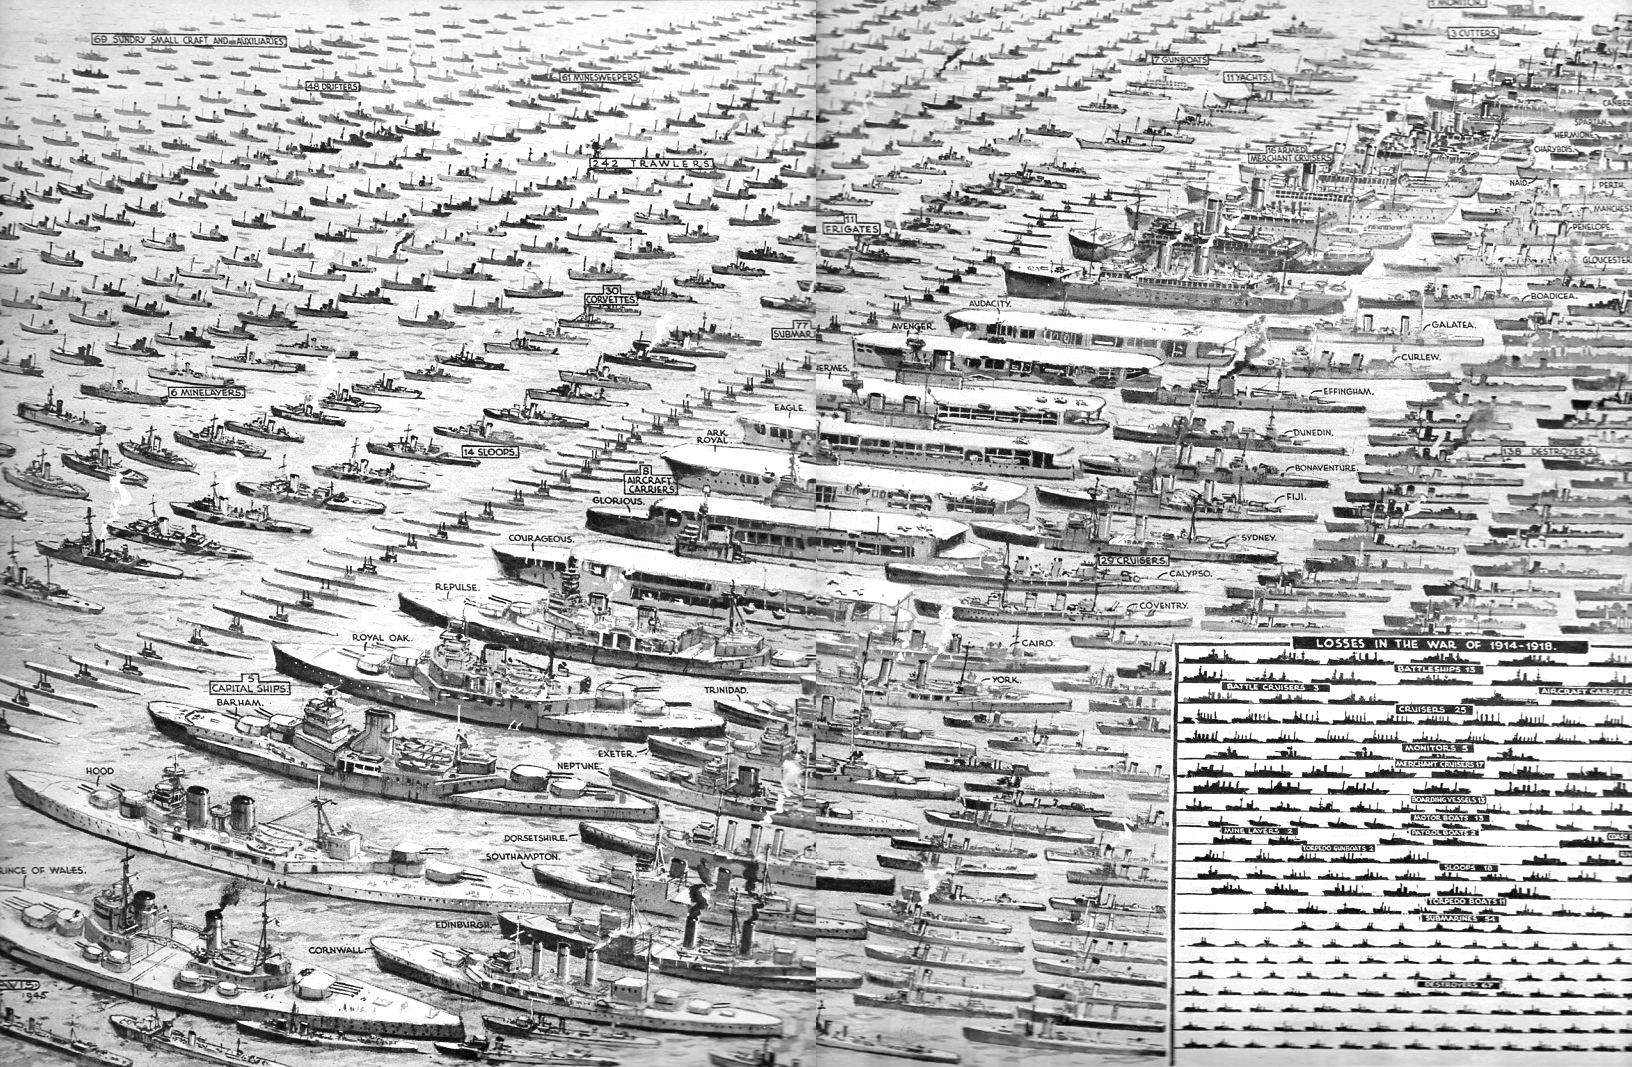 Detailed Graphic Shows Every British Navy Ships Lost In World War II